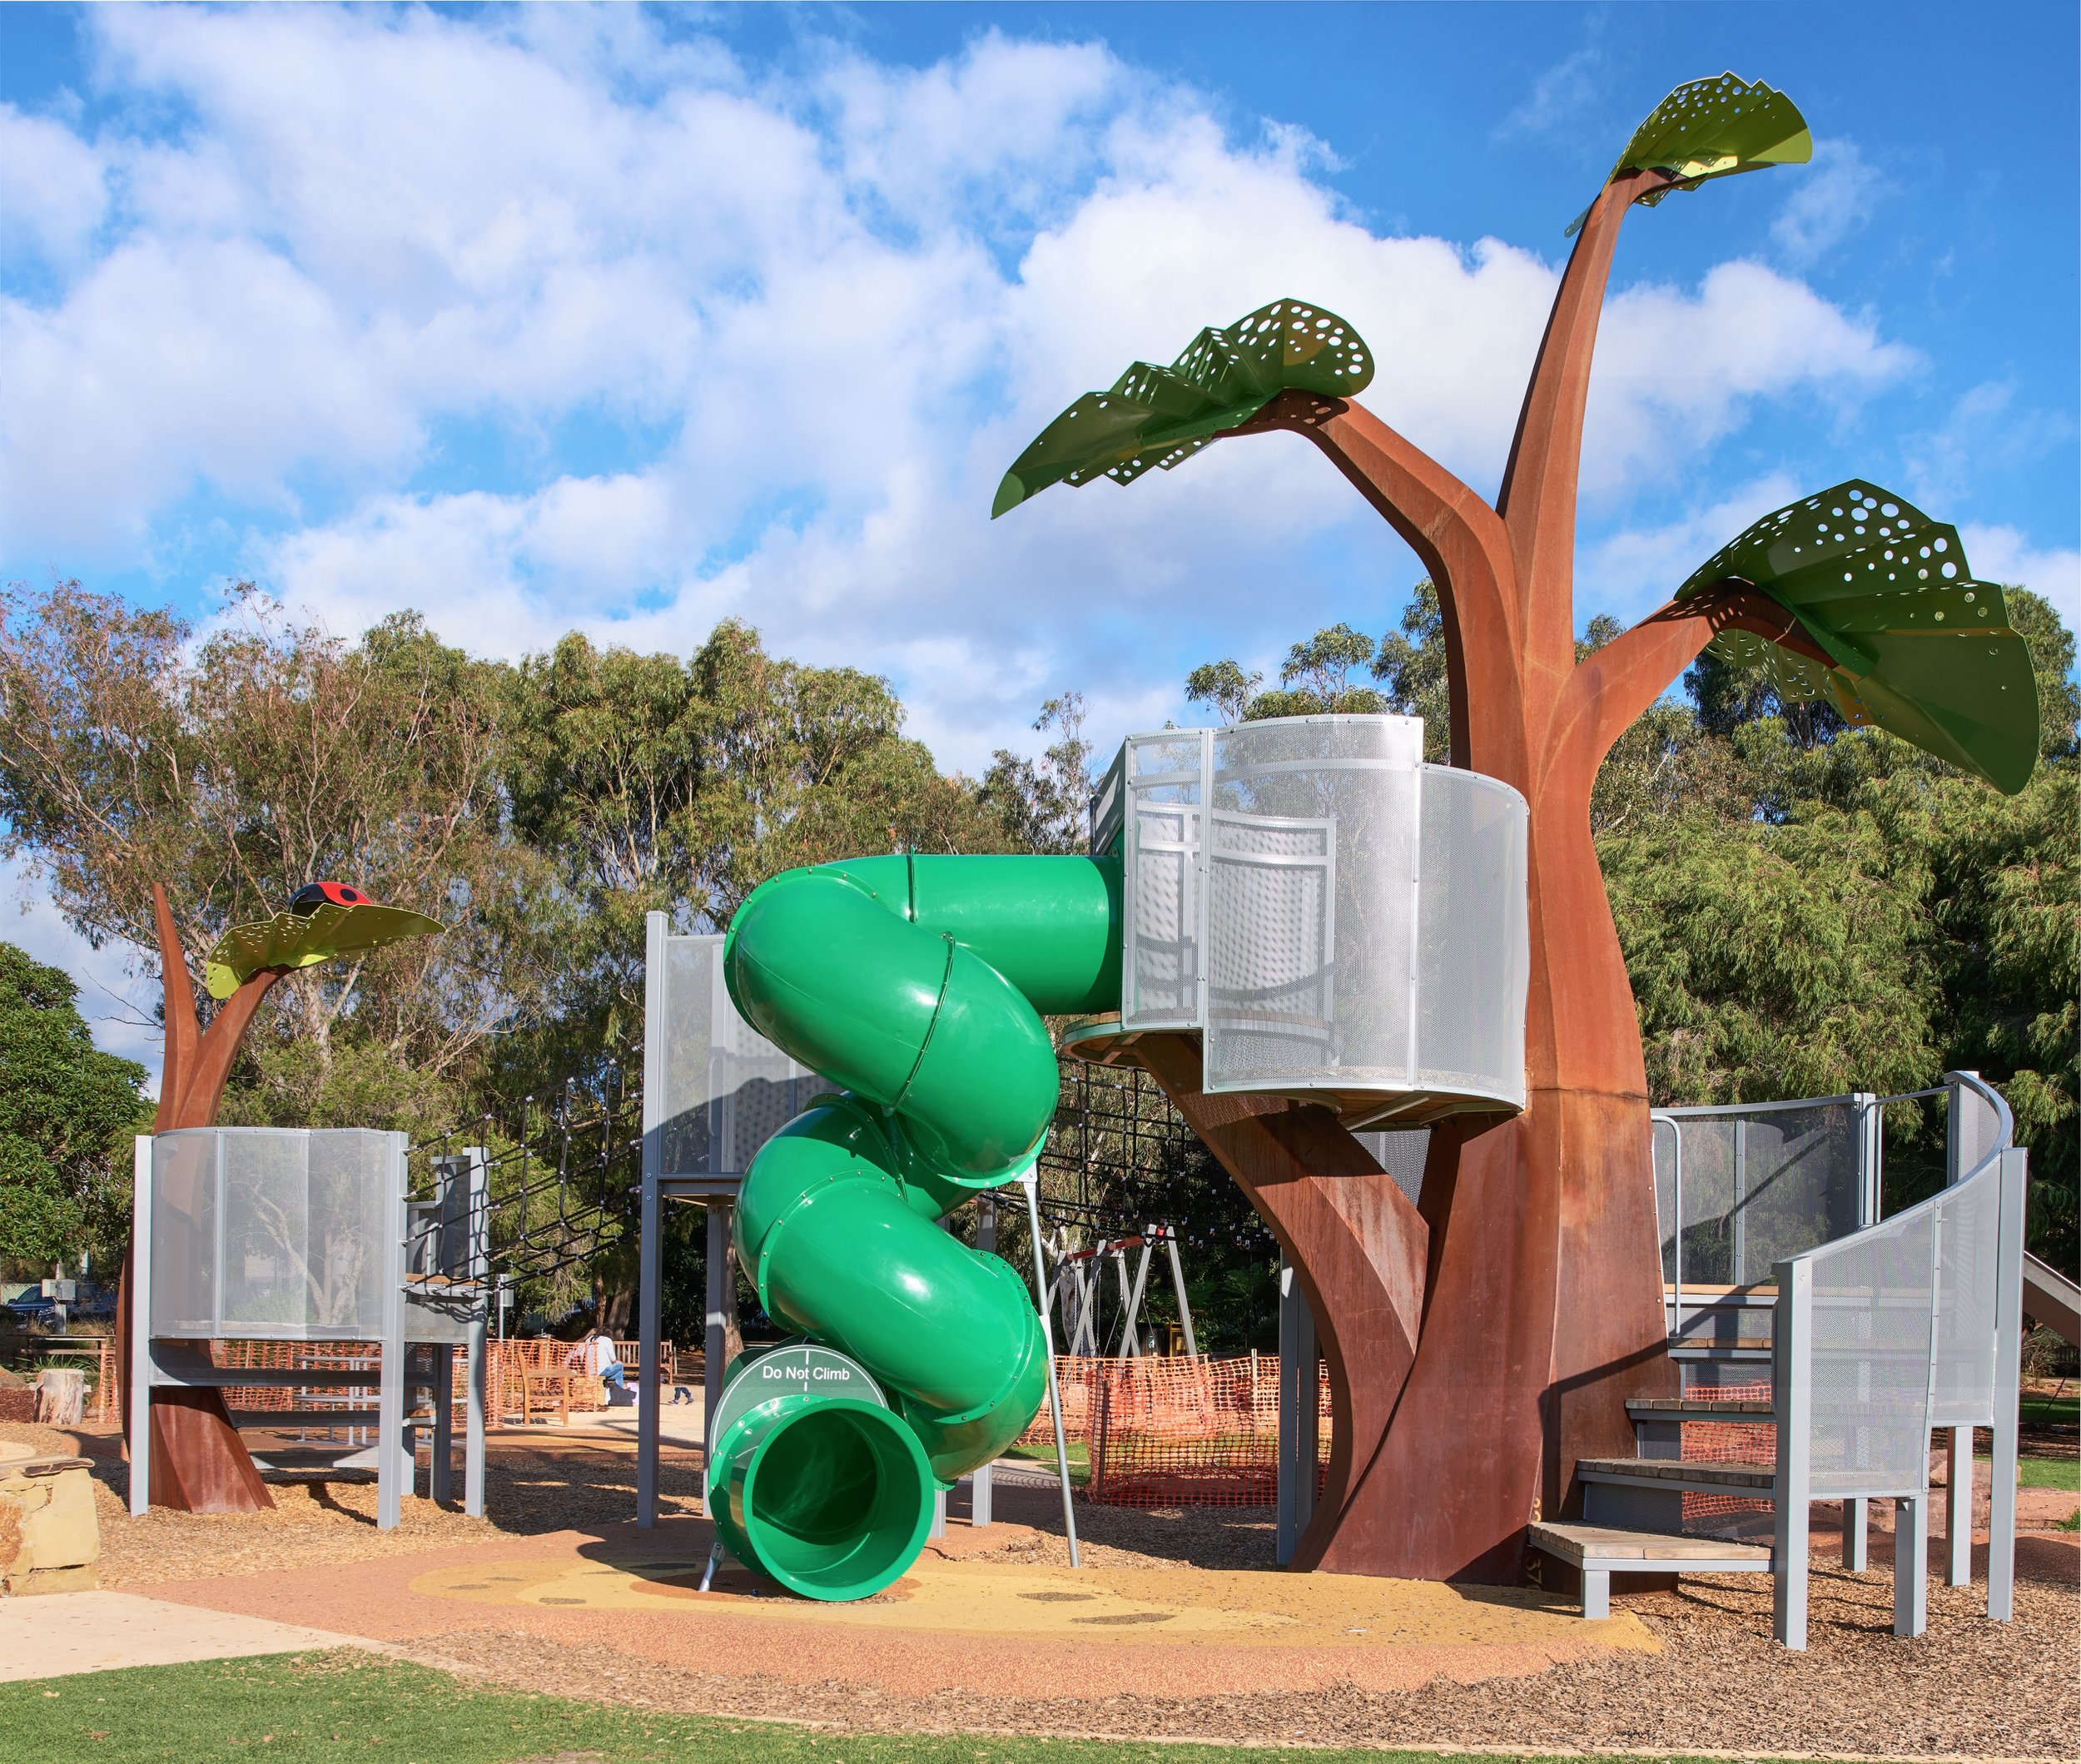 The Sprout is the key feature of the George Pentland Botanic Gardens playspace. Photography:  Wolf Nitch